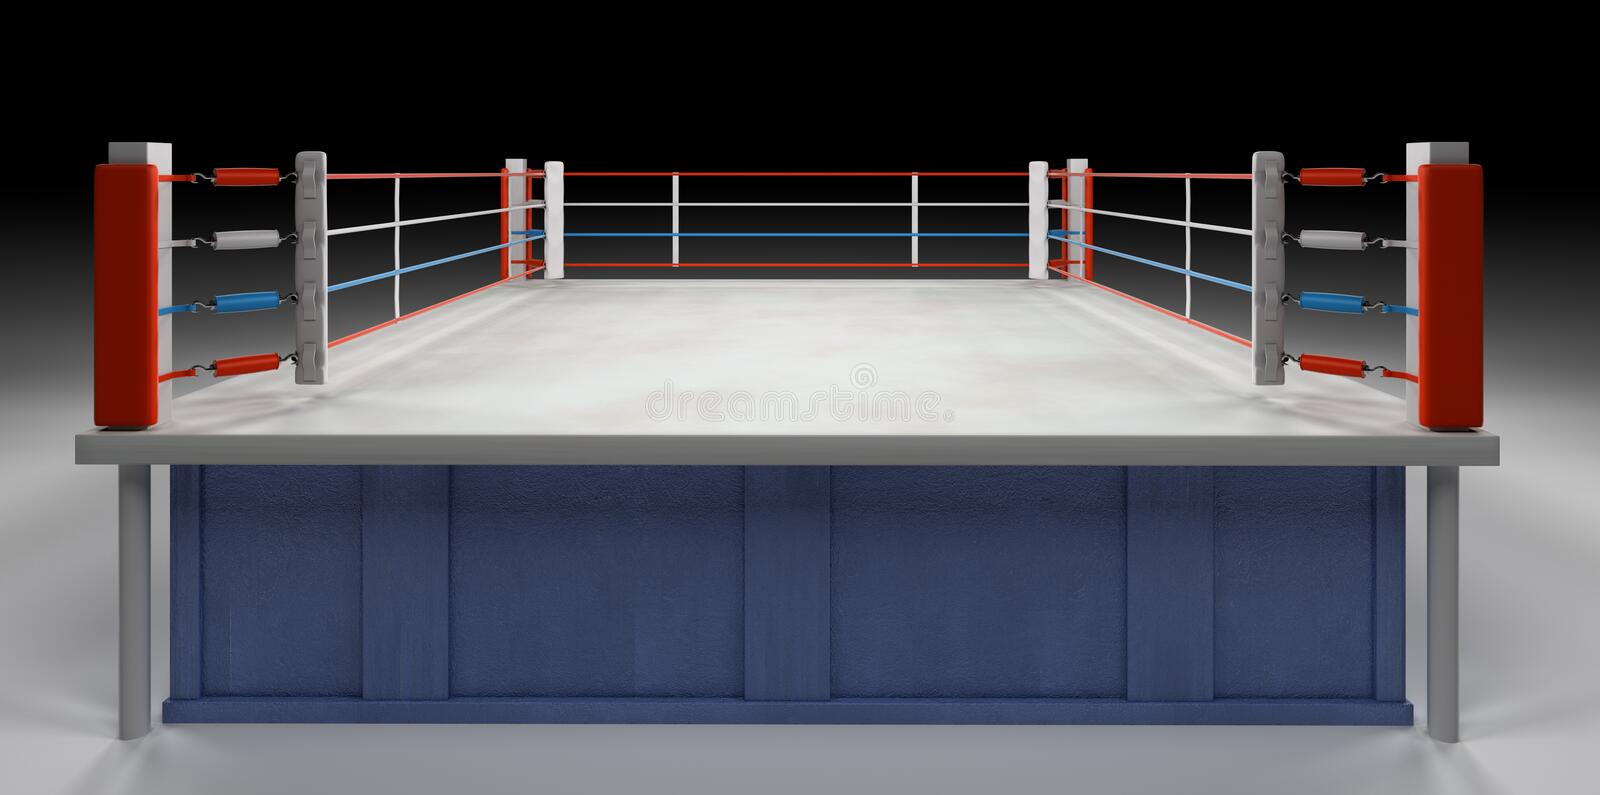 Boxing Arena royalty free stock images